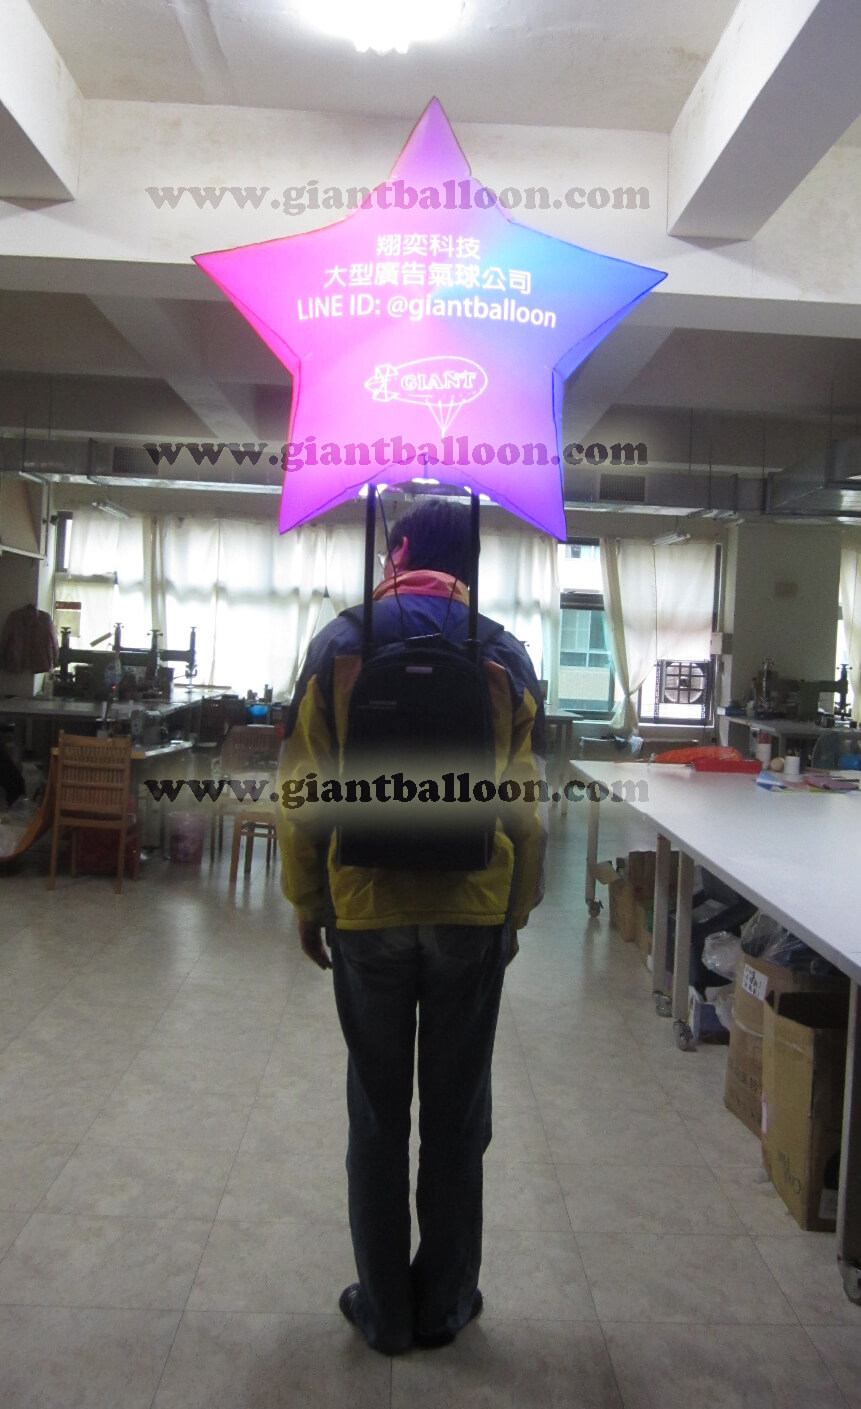 LED-backpack-star-balloon